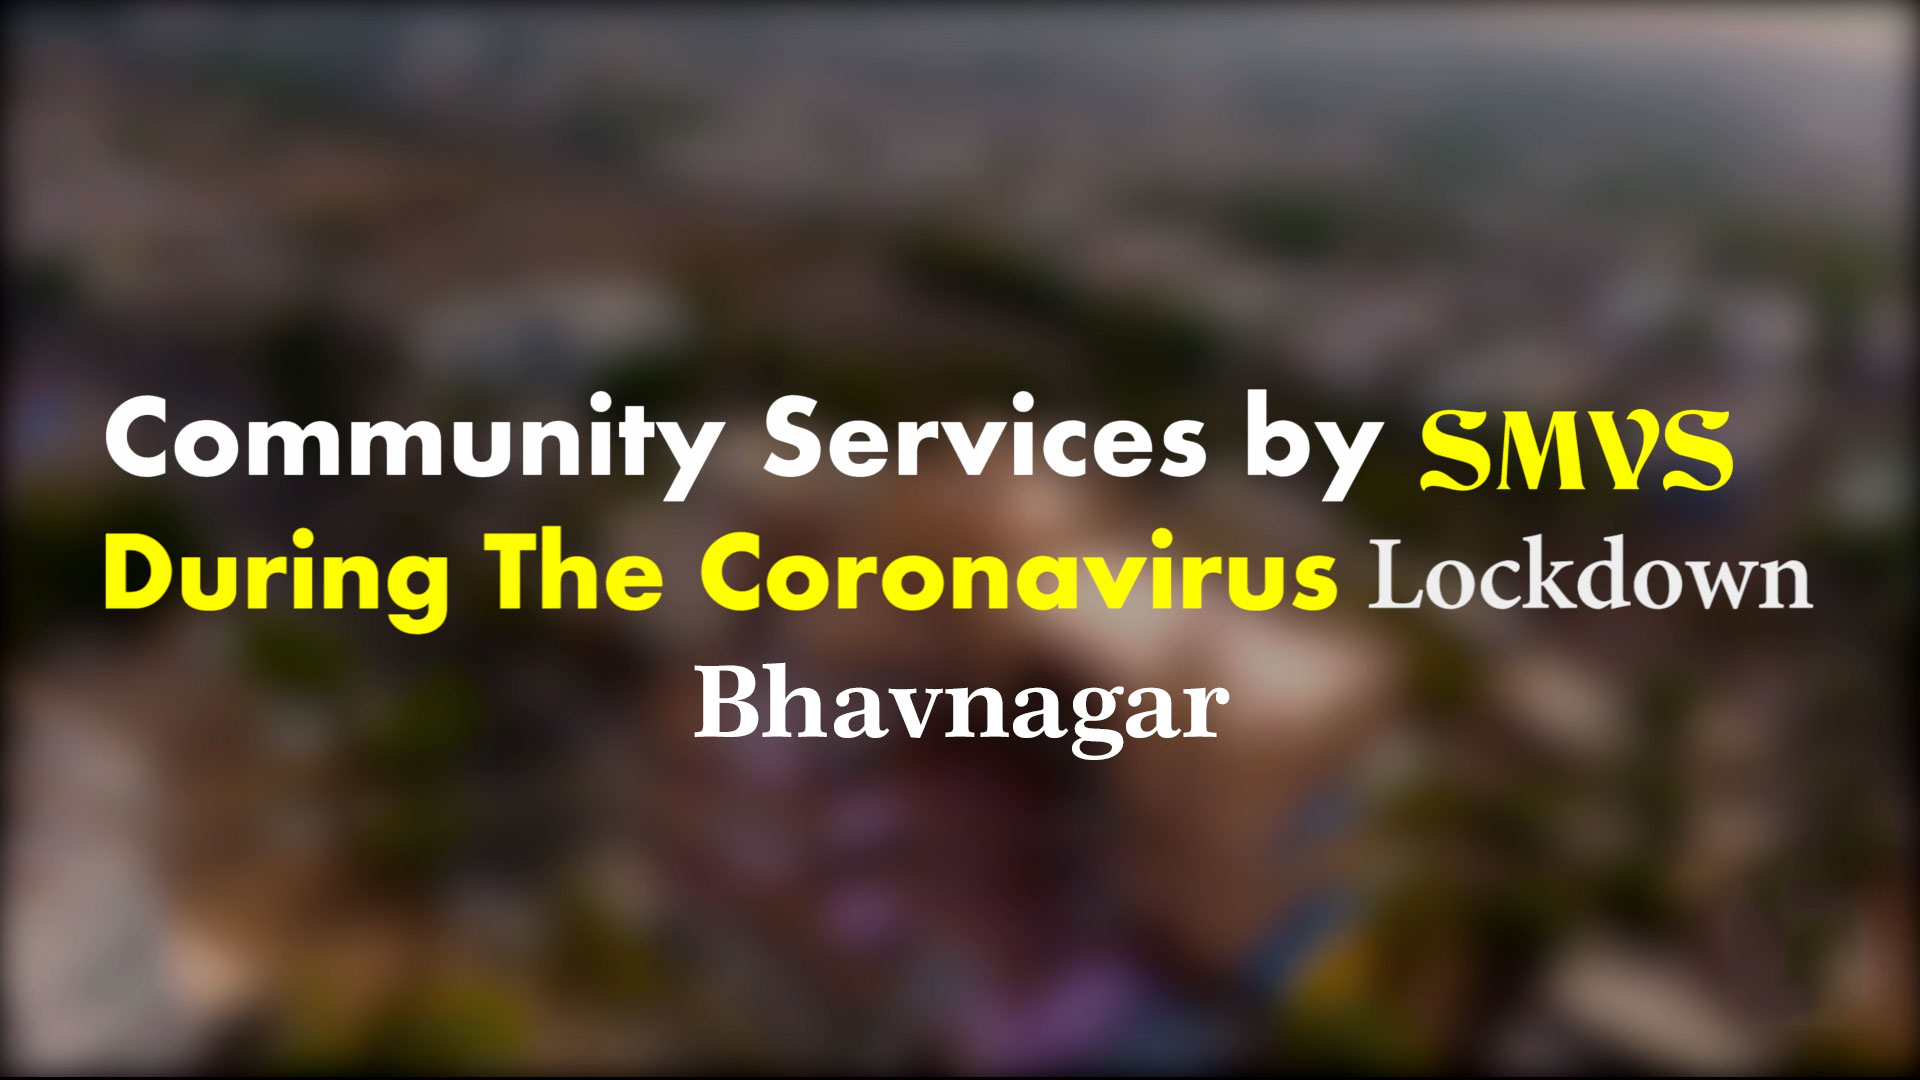 Community Services By SMVS During the Coronavirus Lockdown | Bhavnagar